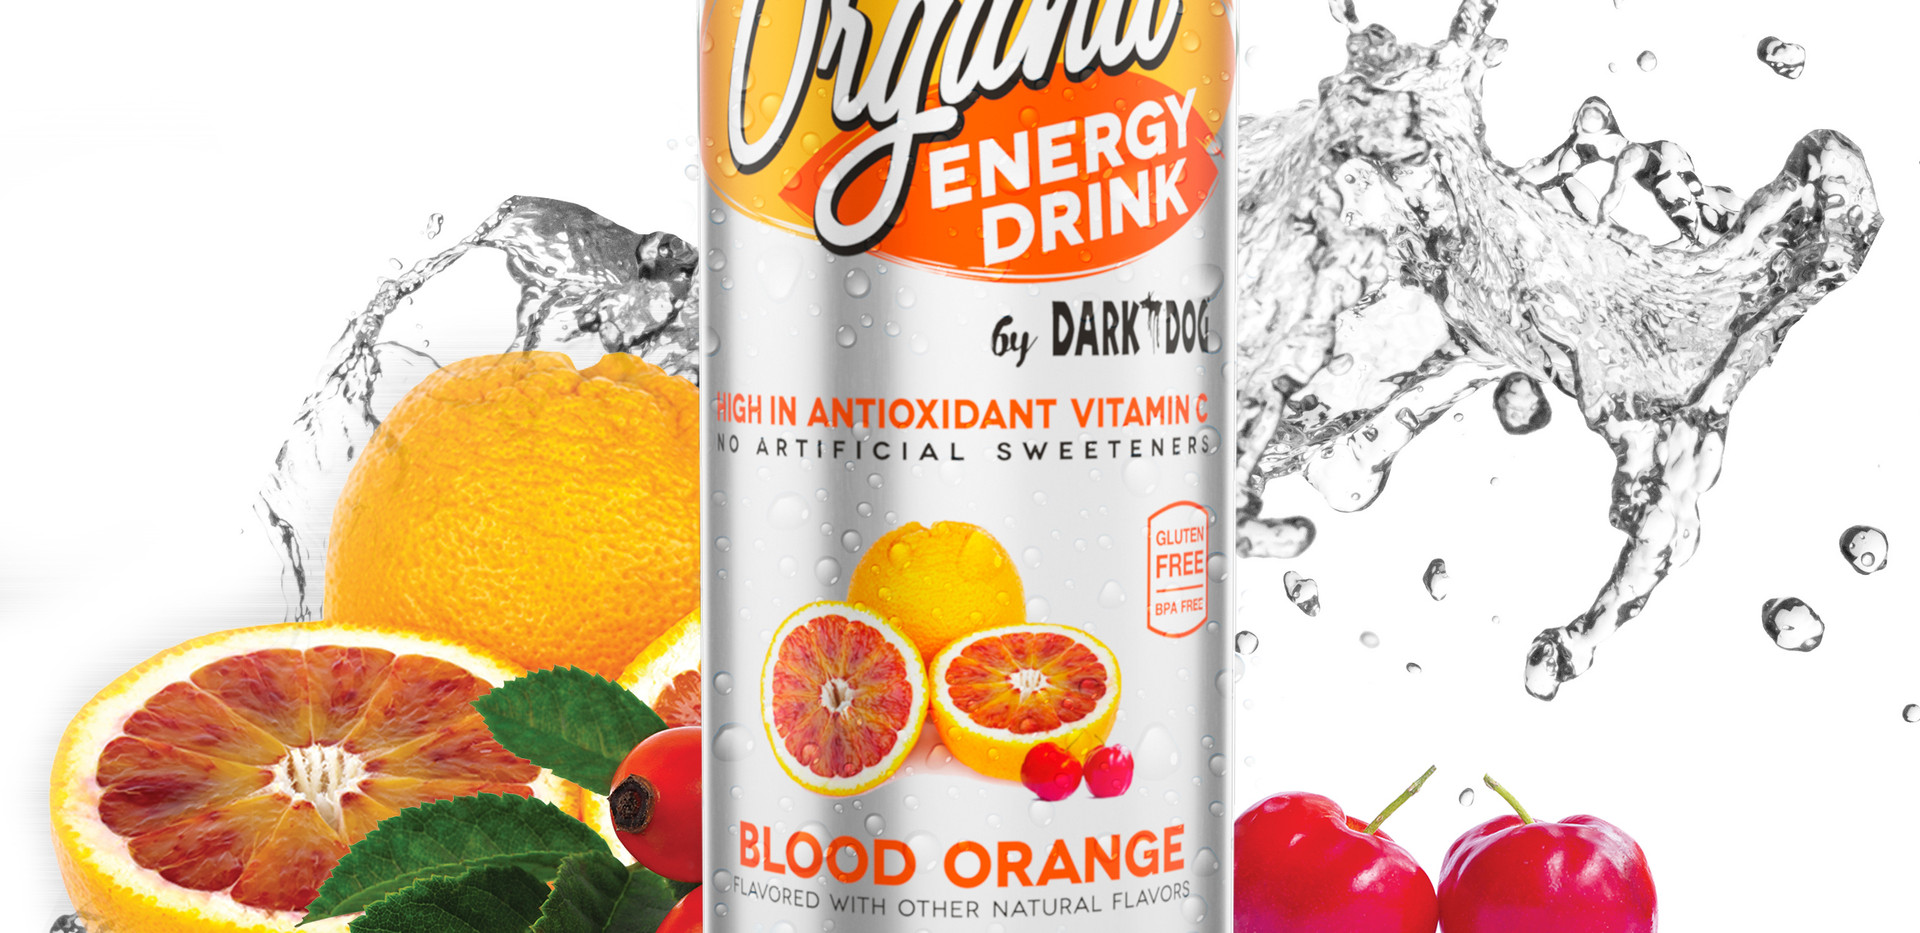 ORGANIC ENERGY DRINK BY DARK DOG BLOOD ORANGE